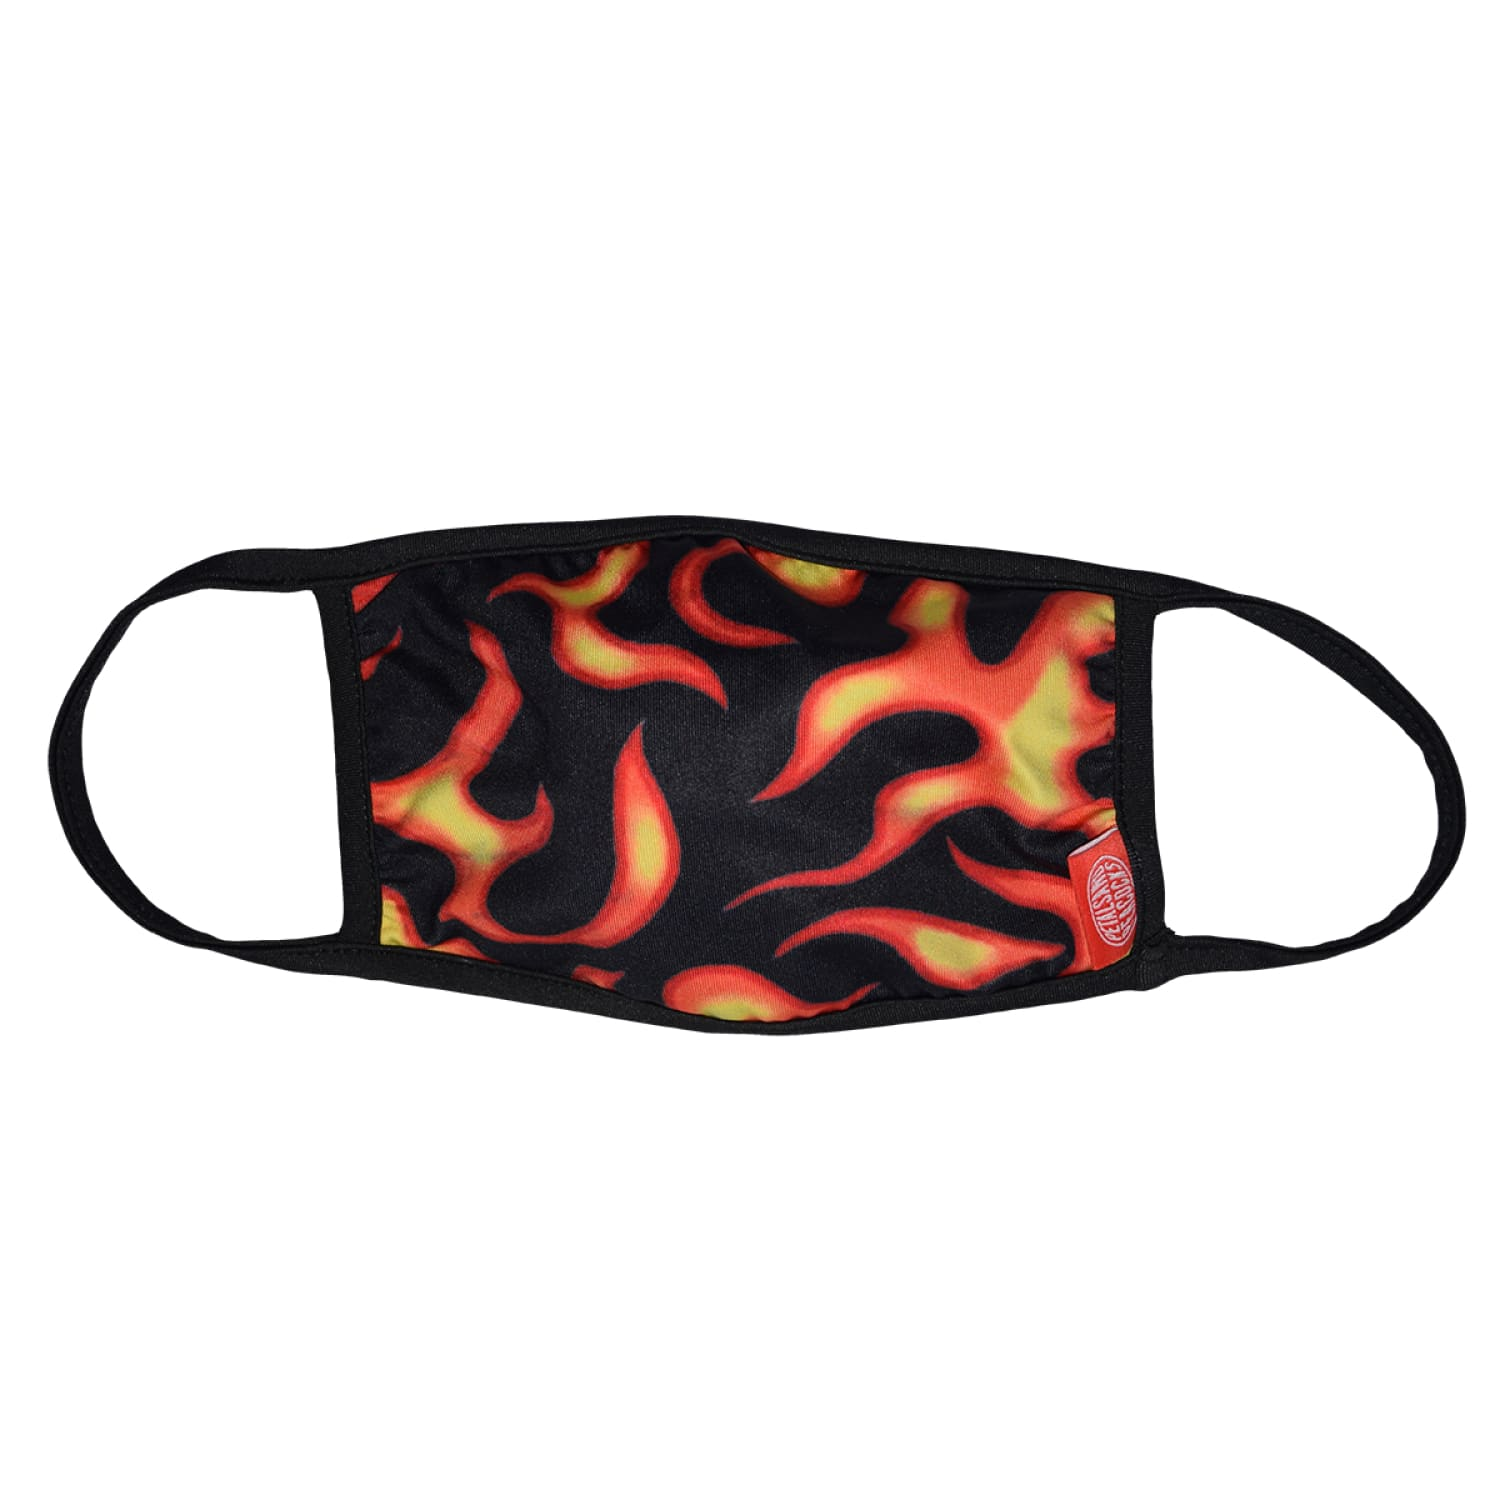 Flames Mask 90s - Covid - Face Mask - Safety - fire